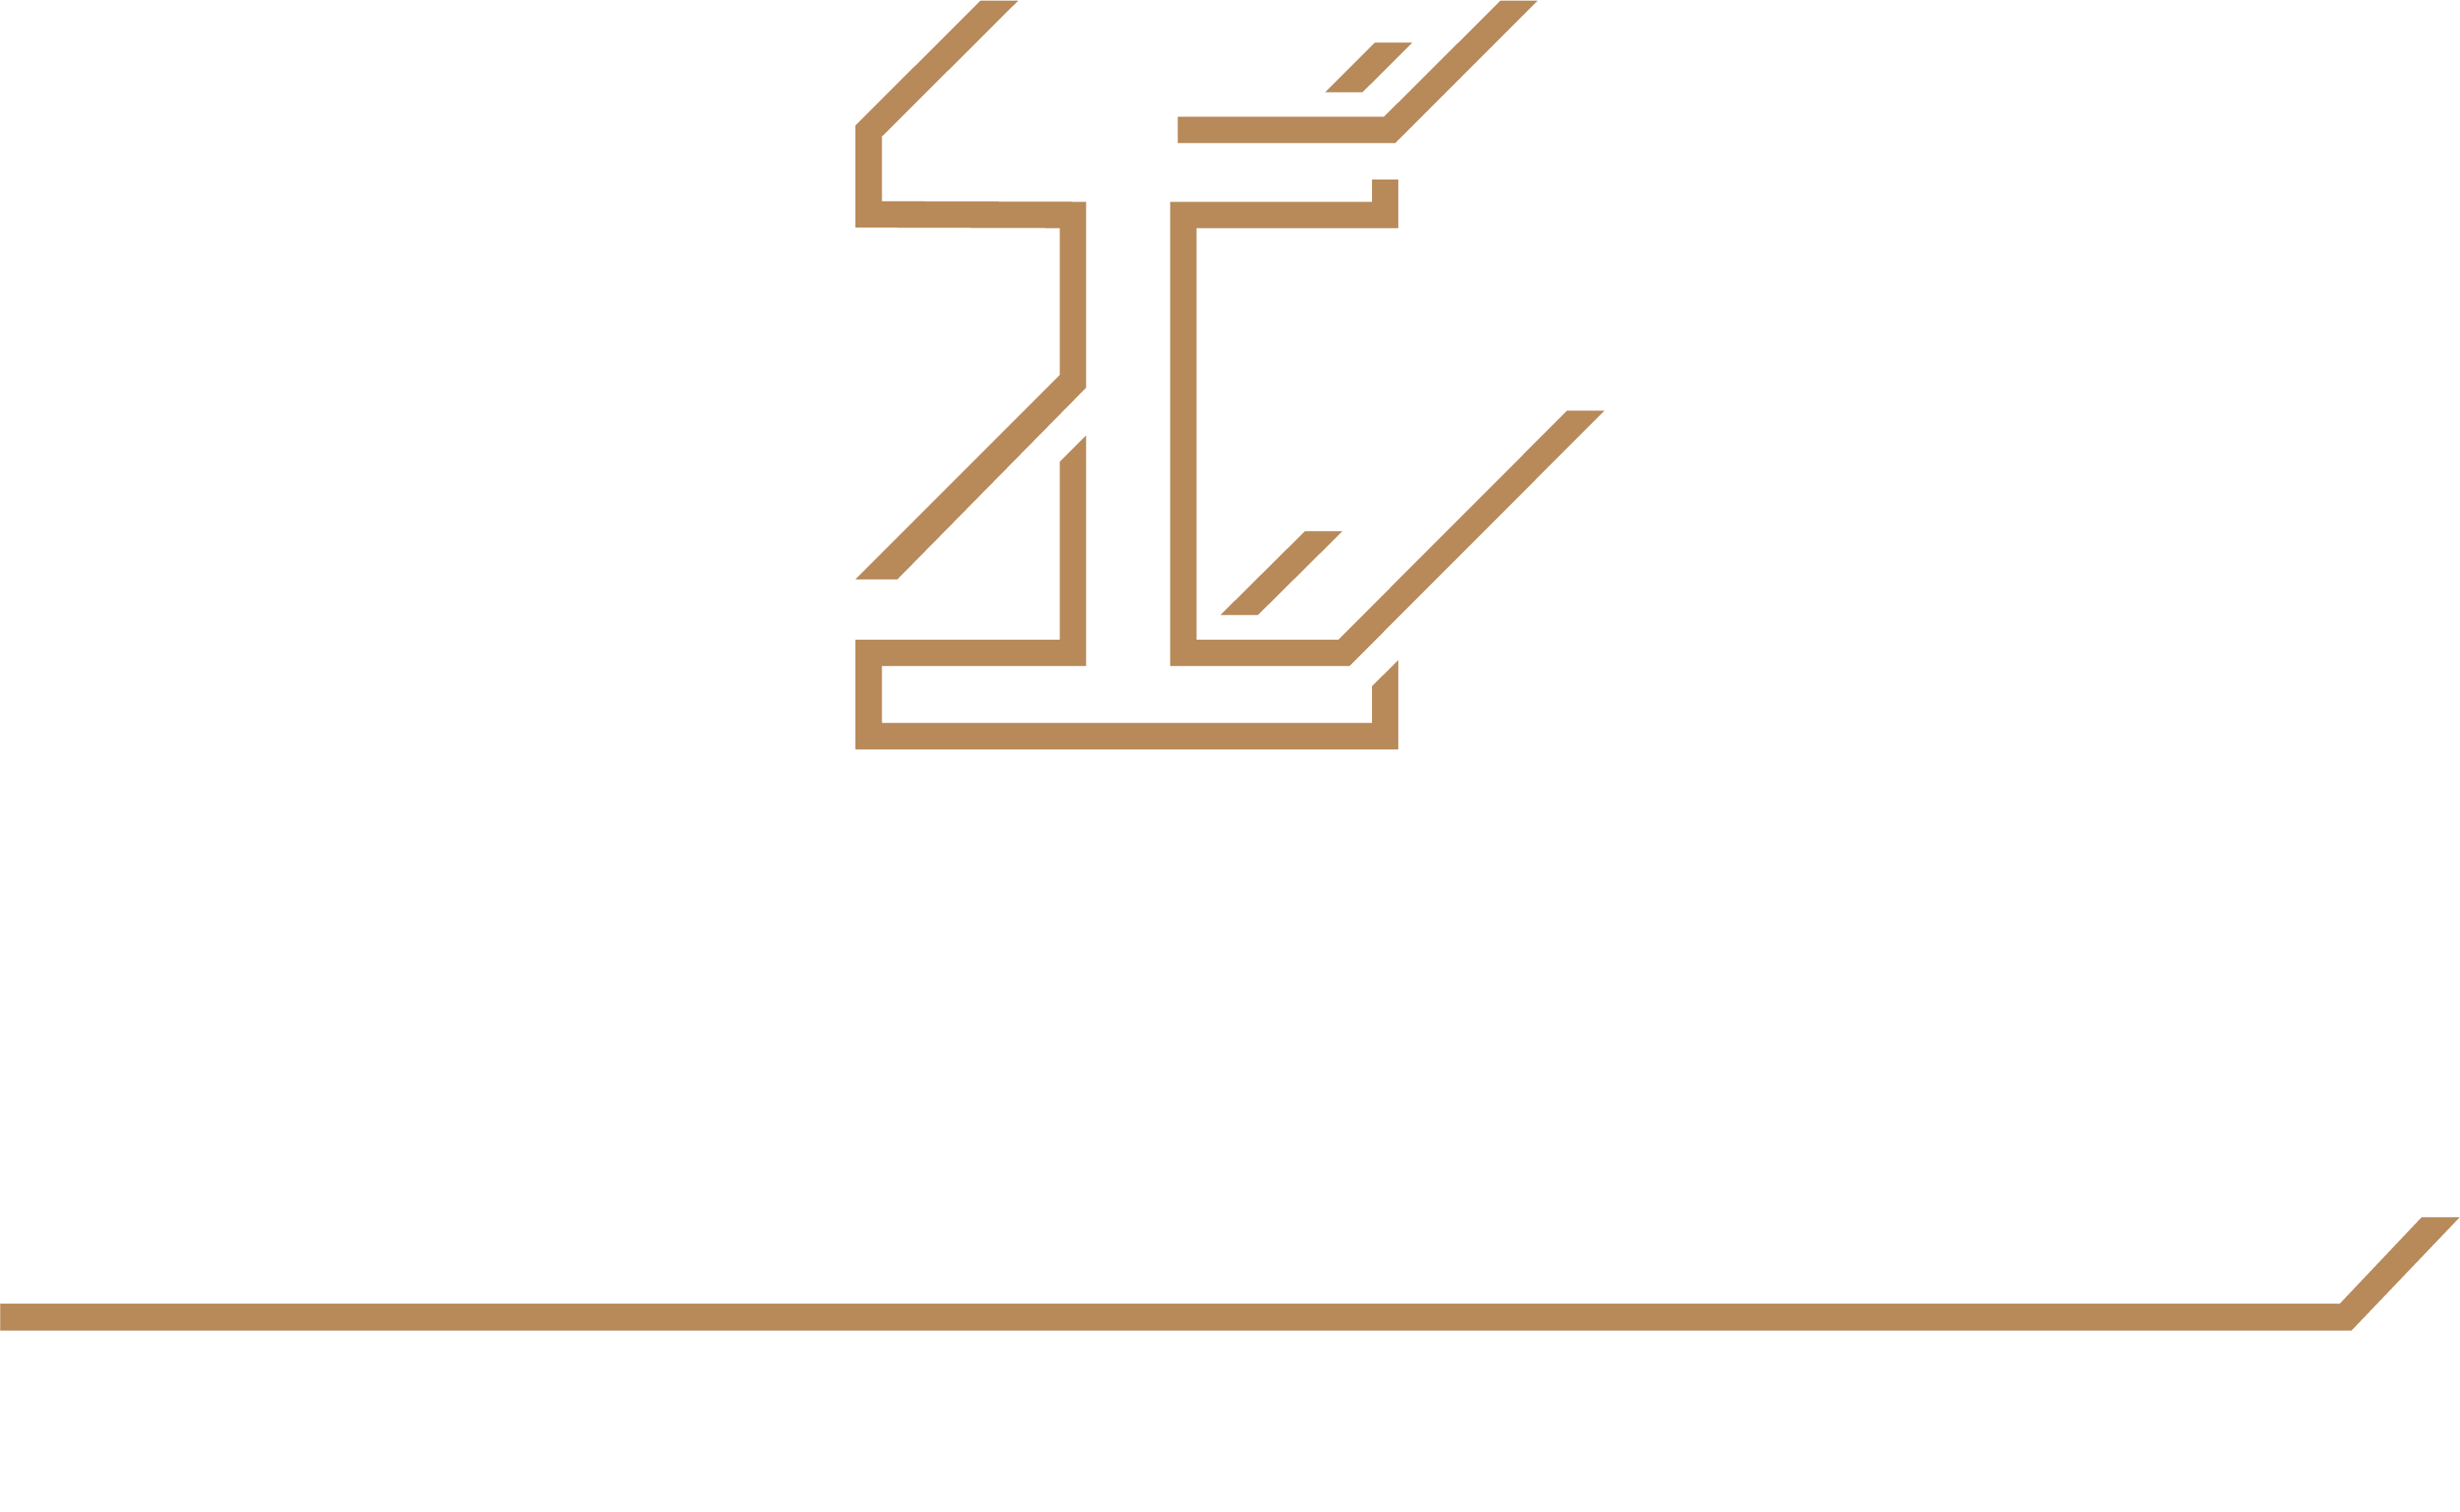 Integrity Structural Engineering Services, LLC